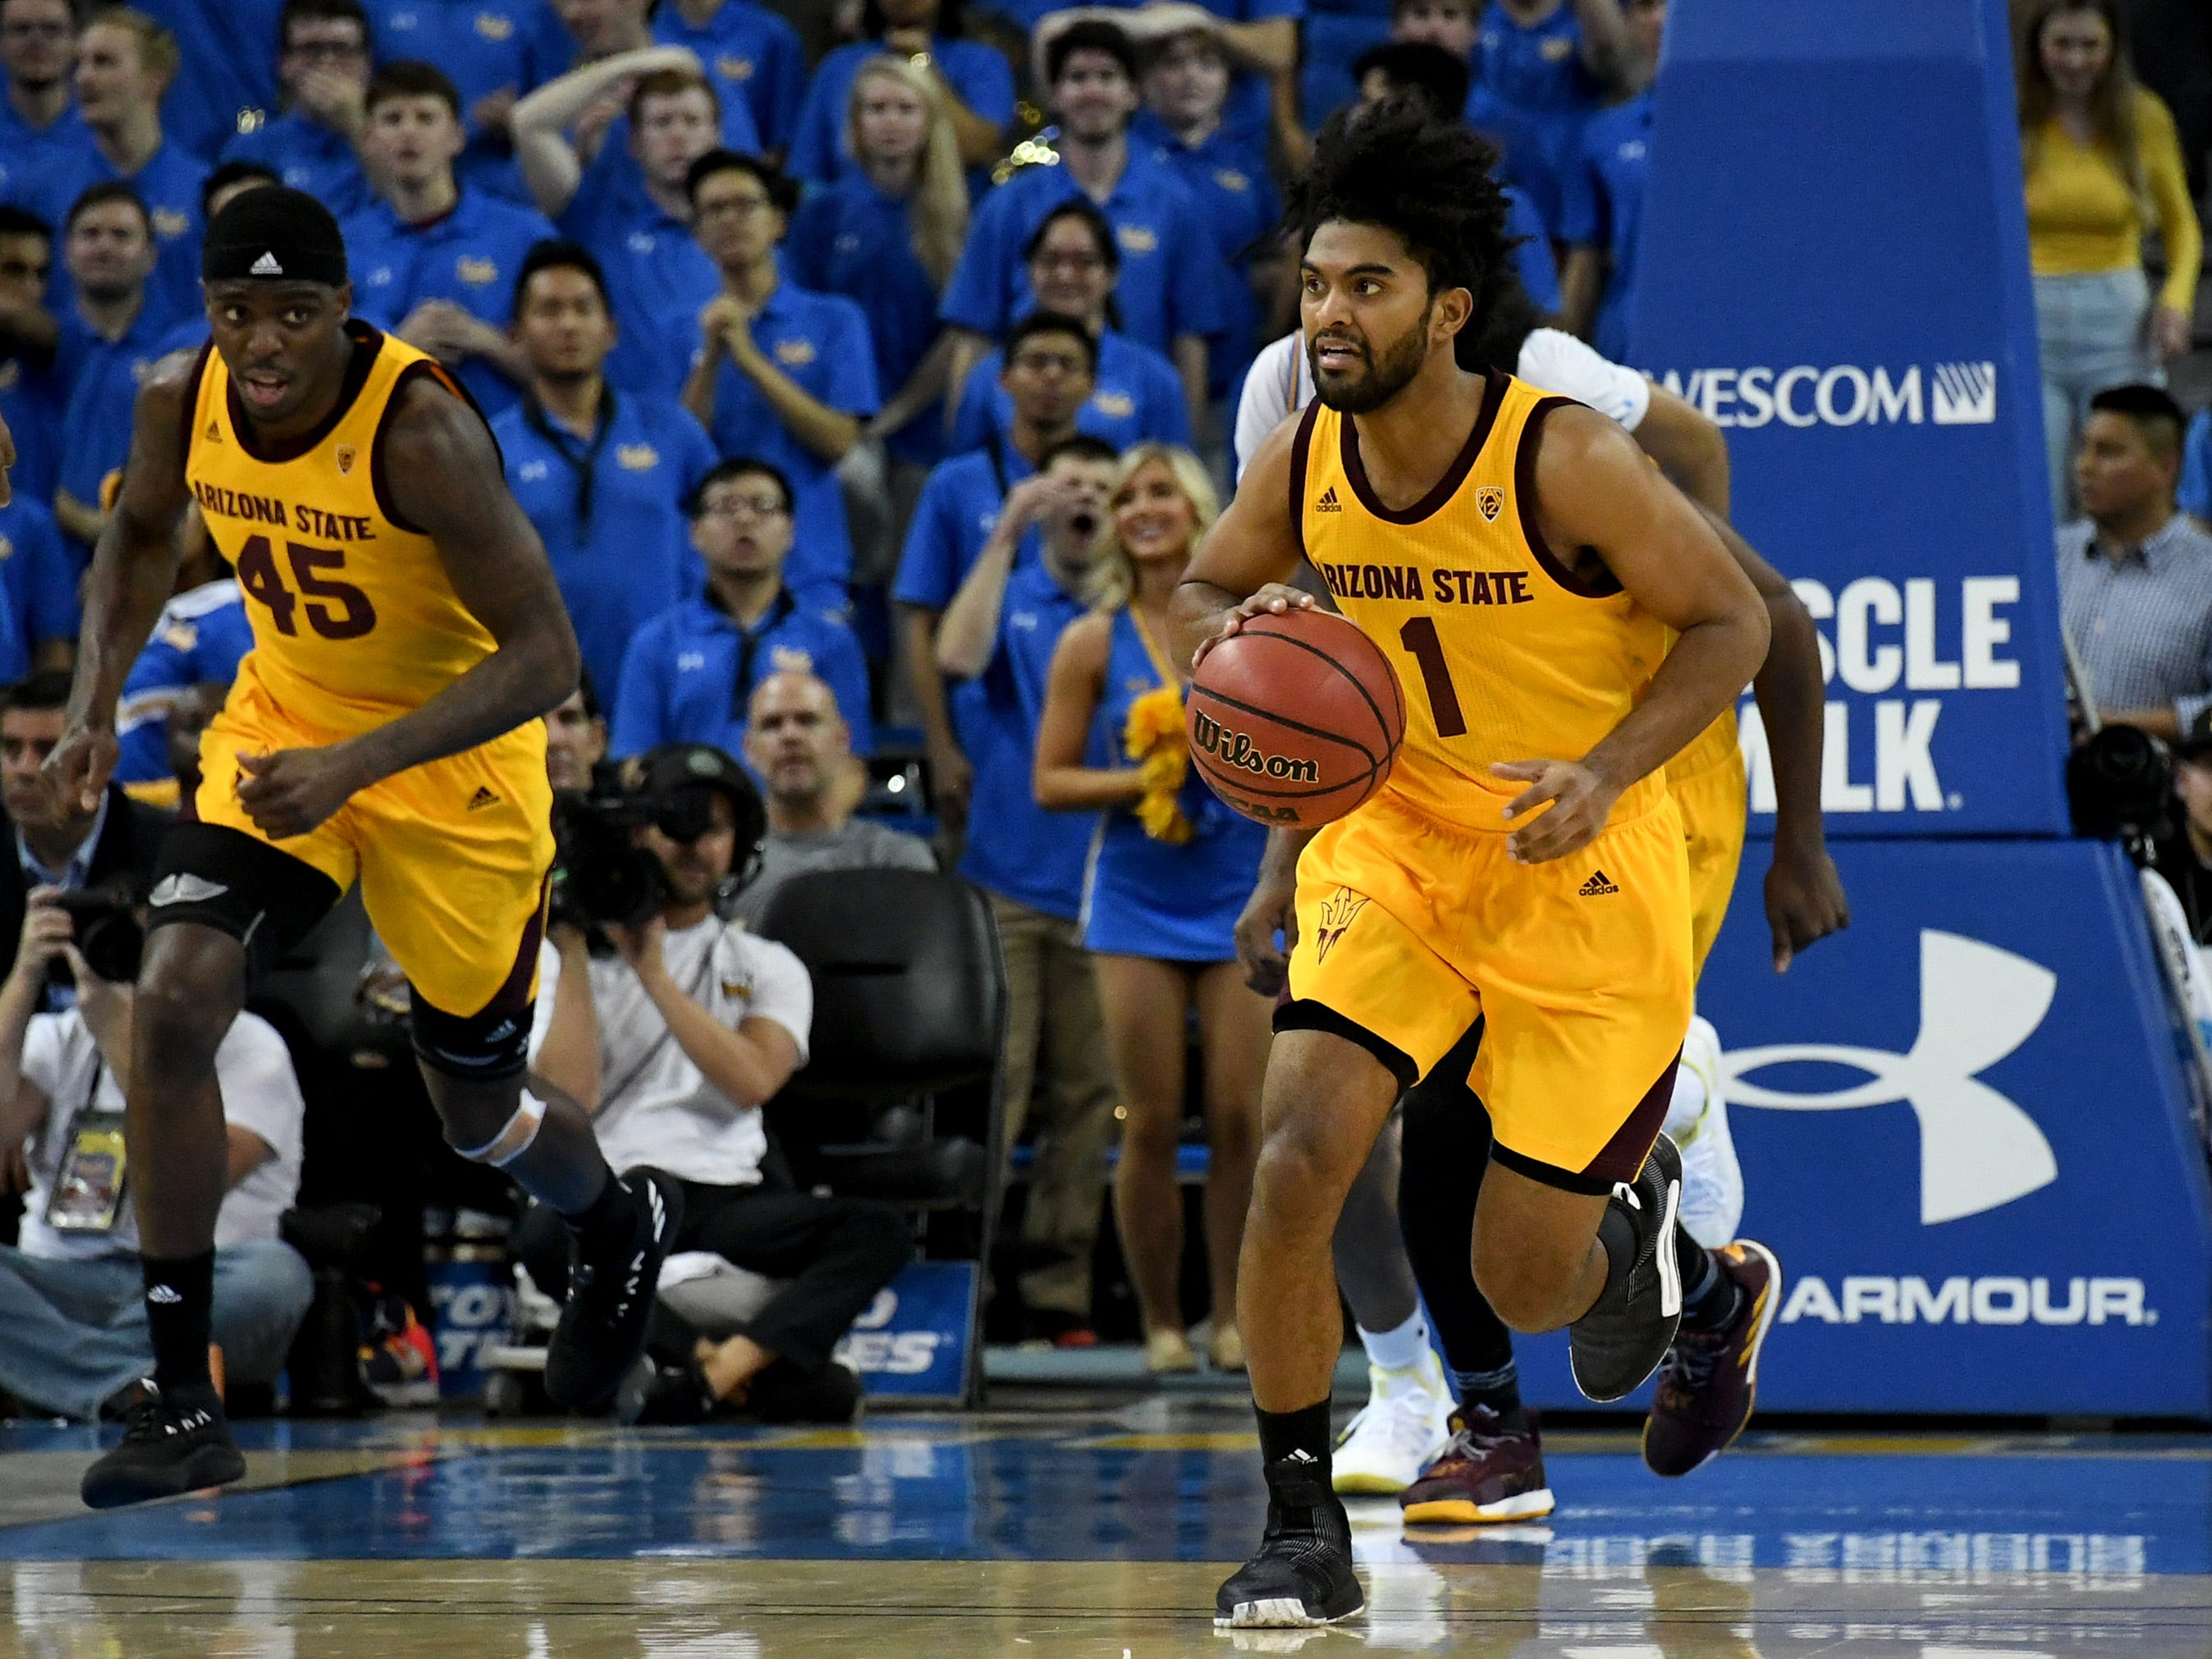 Jan 24, 2019; Los Angeles, CA, USA; Arizona State Sun Devils guard Remy Martin (1) brings the ball up court against the UCLA Bruins during the first half at Pauley Pavilion. Mandatory Credit: Richard Mackson-USA TODAY Sports